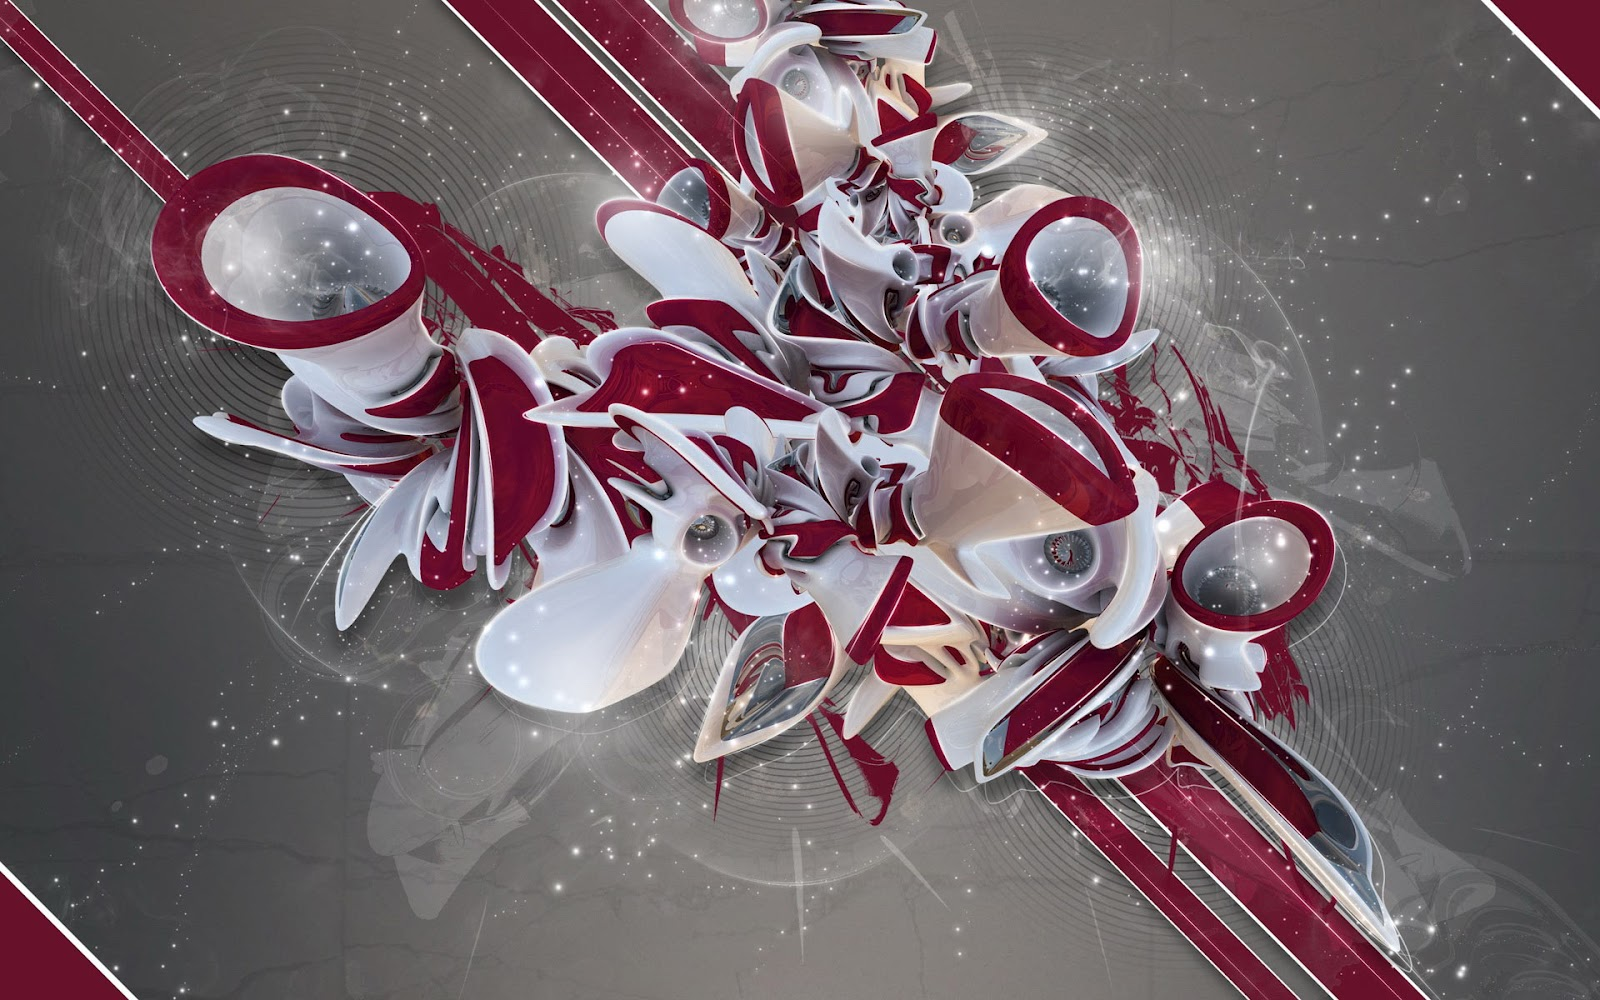 Simple Wallpaper Name Rajput - Symphony_orchestra_-_Fractal_3d_Design_pictures  Pictures_1002953.jpg